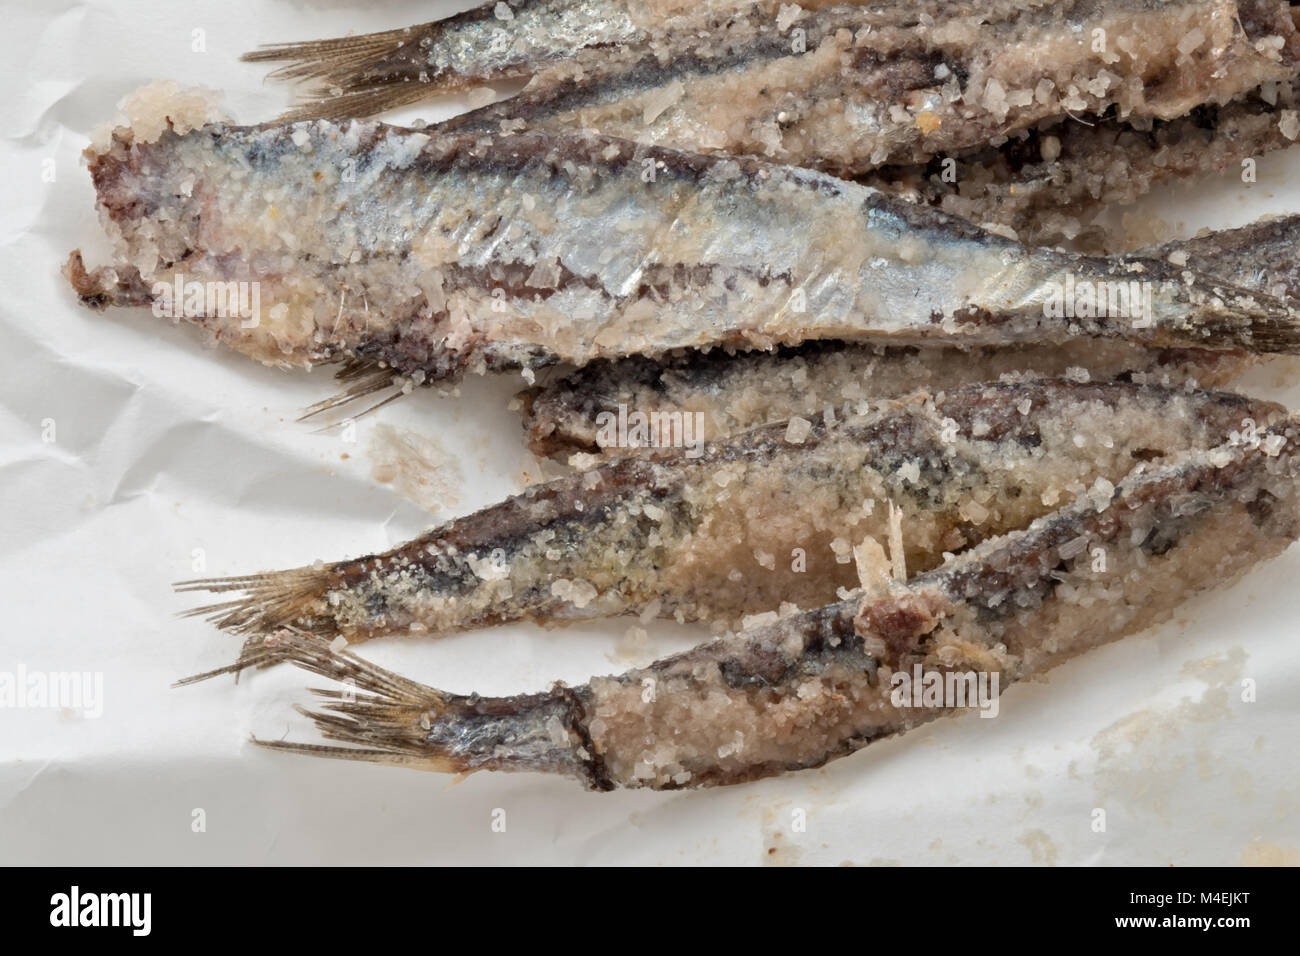 sardines salted anchovies on paper 3 - Stock Image